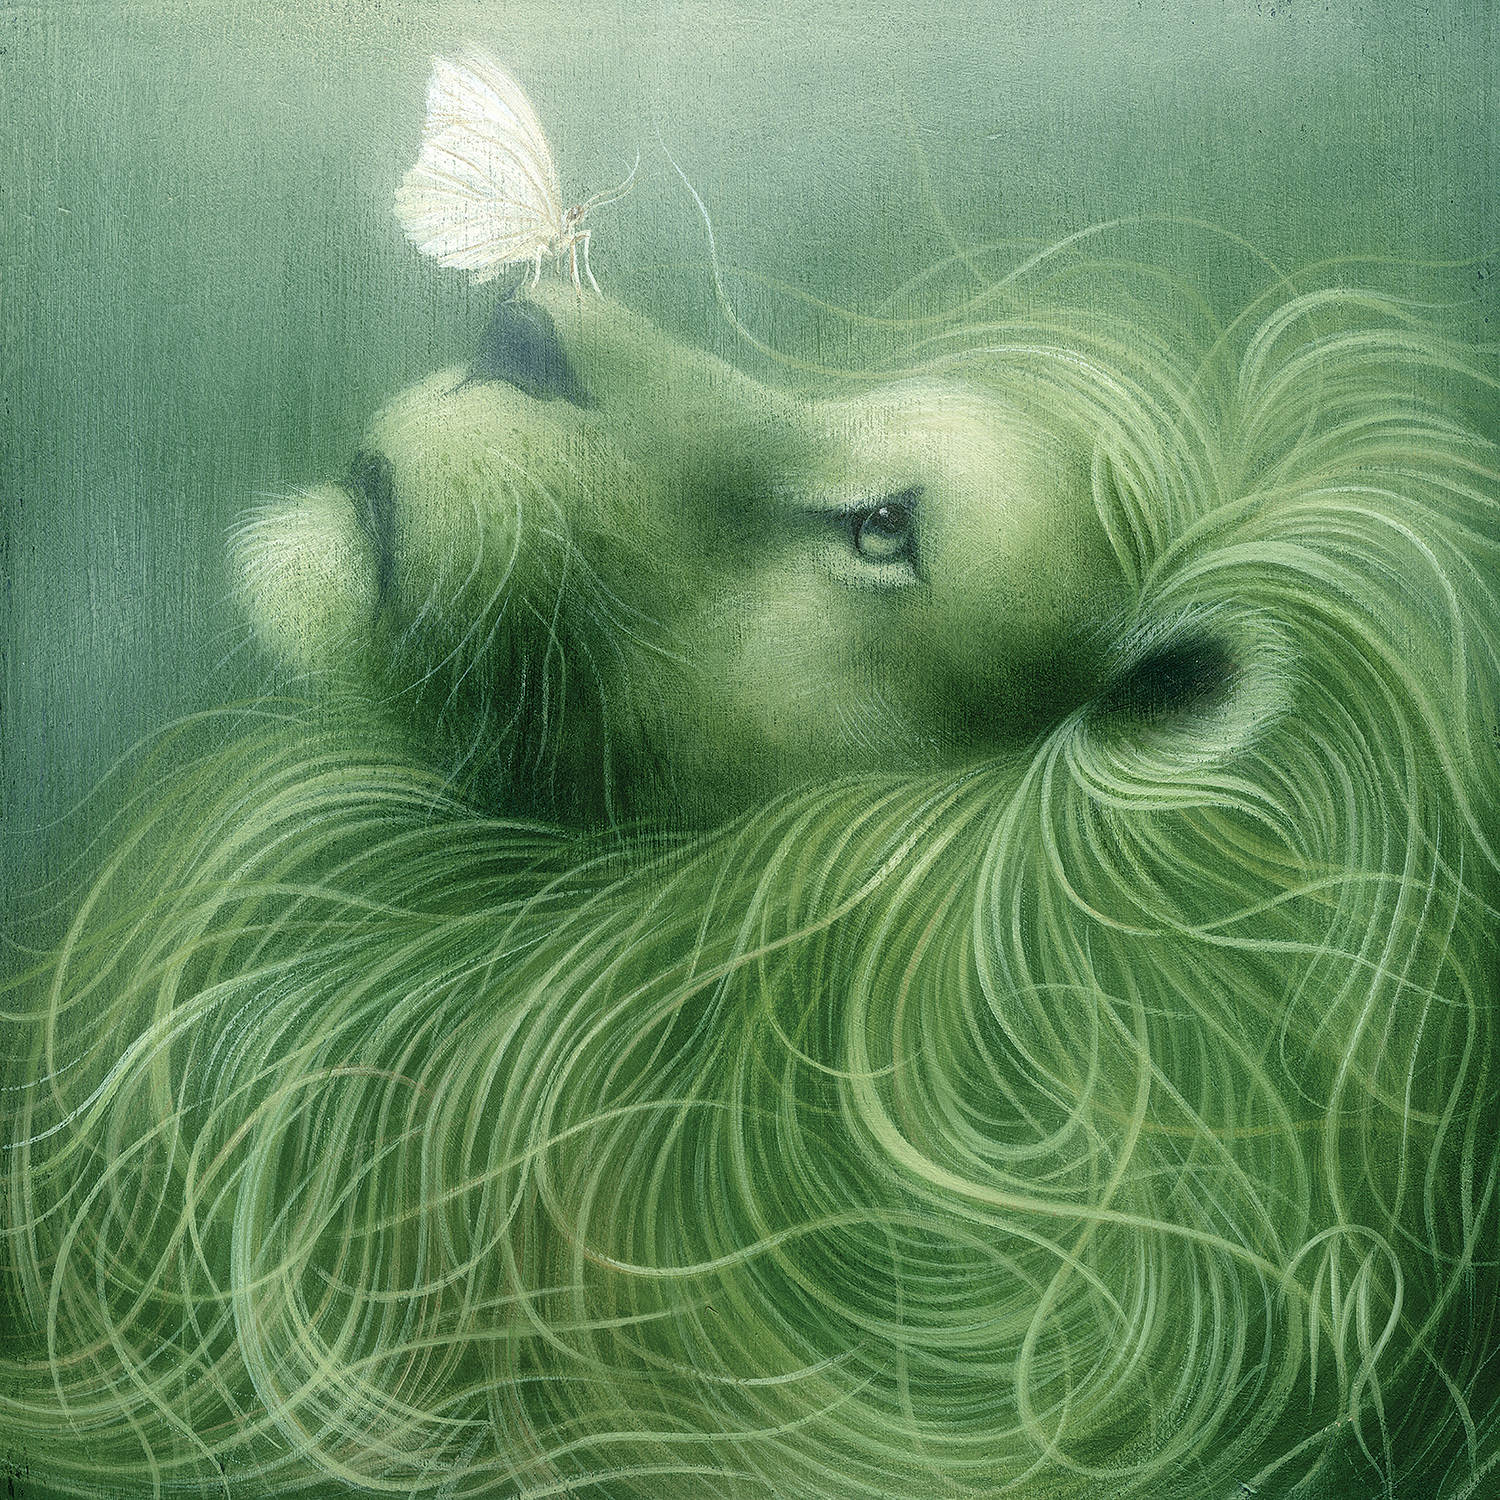 Illustration of a lion in a green tone looking up to a white butterfly on its nose